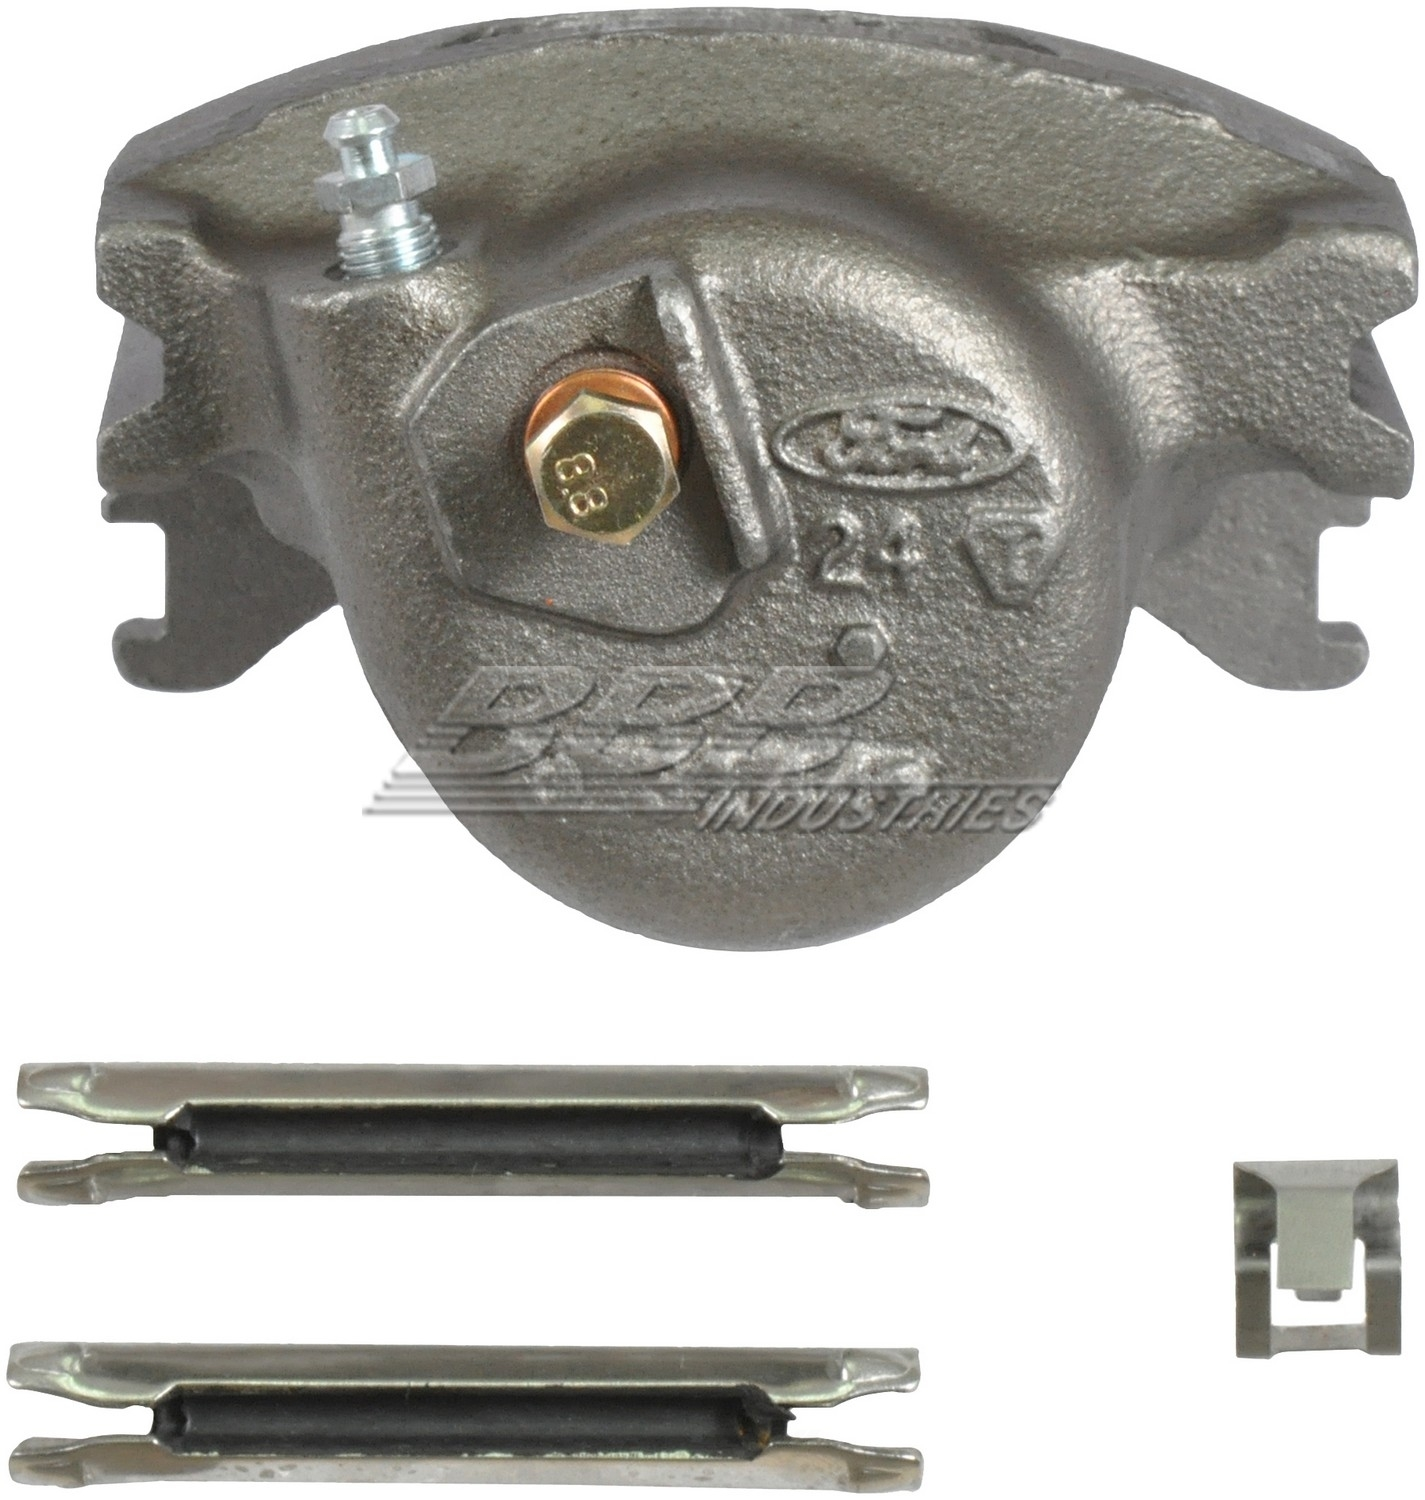 BBB INDUSTRIES - Reman Caliper w/ Installation Hardware - BBA 97-01132A